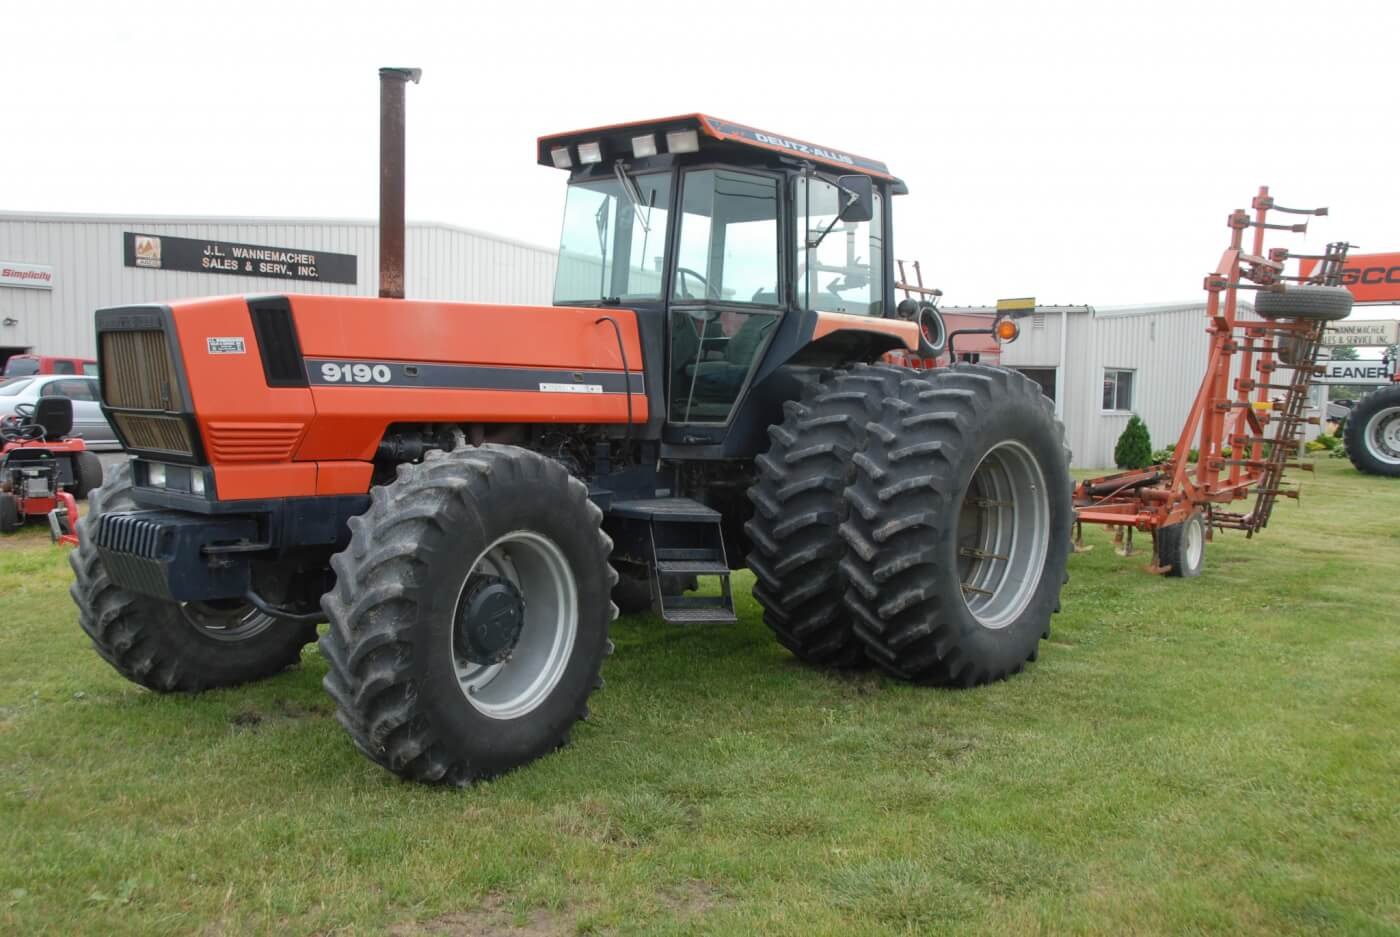 With a 119-inch wheelbase, the 9120 is a long tractor. That was a good thing from the weight balance and ride comfort standpoints, but made for a wide turning circle. This tractor weights more than nine tons before weight are added. It came standard with AWD and an 18-speed partial power shift transmission. This one has already lived a life of hard work but is not done yet. The rear dual radial tires make this a tractor that's still up to long days in the field with big implements and tough ground. It's seen here on AGCO Dealer J.L. Wannamacher's lot in Ottoville, Ohio.